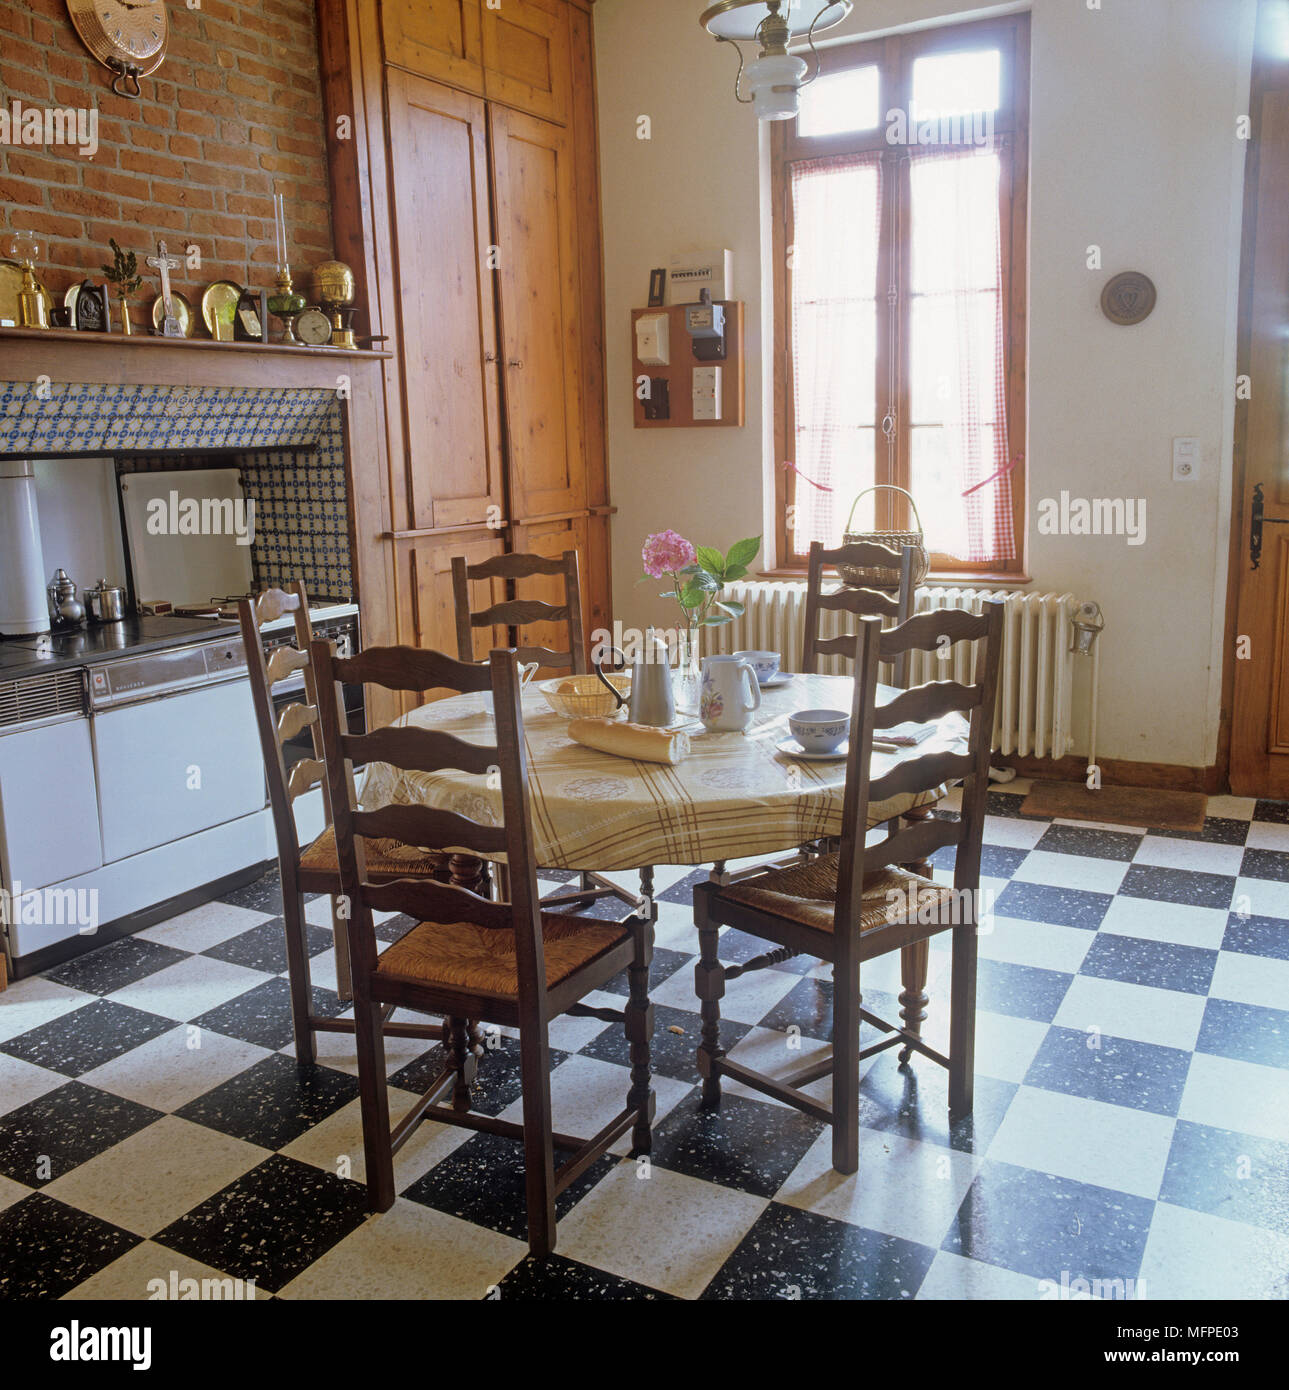 Round Dining Table And Wooden Chairs In Country Style Kitchen Stock